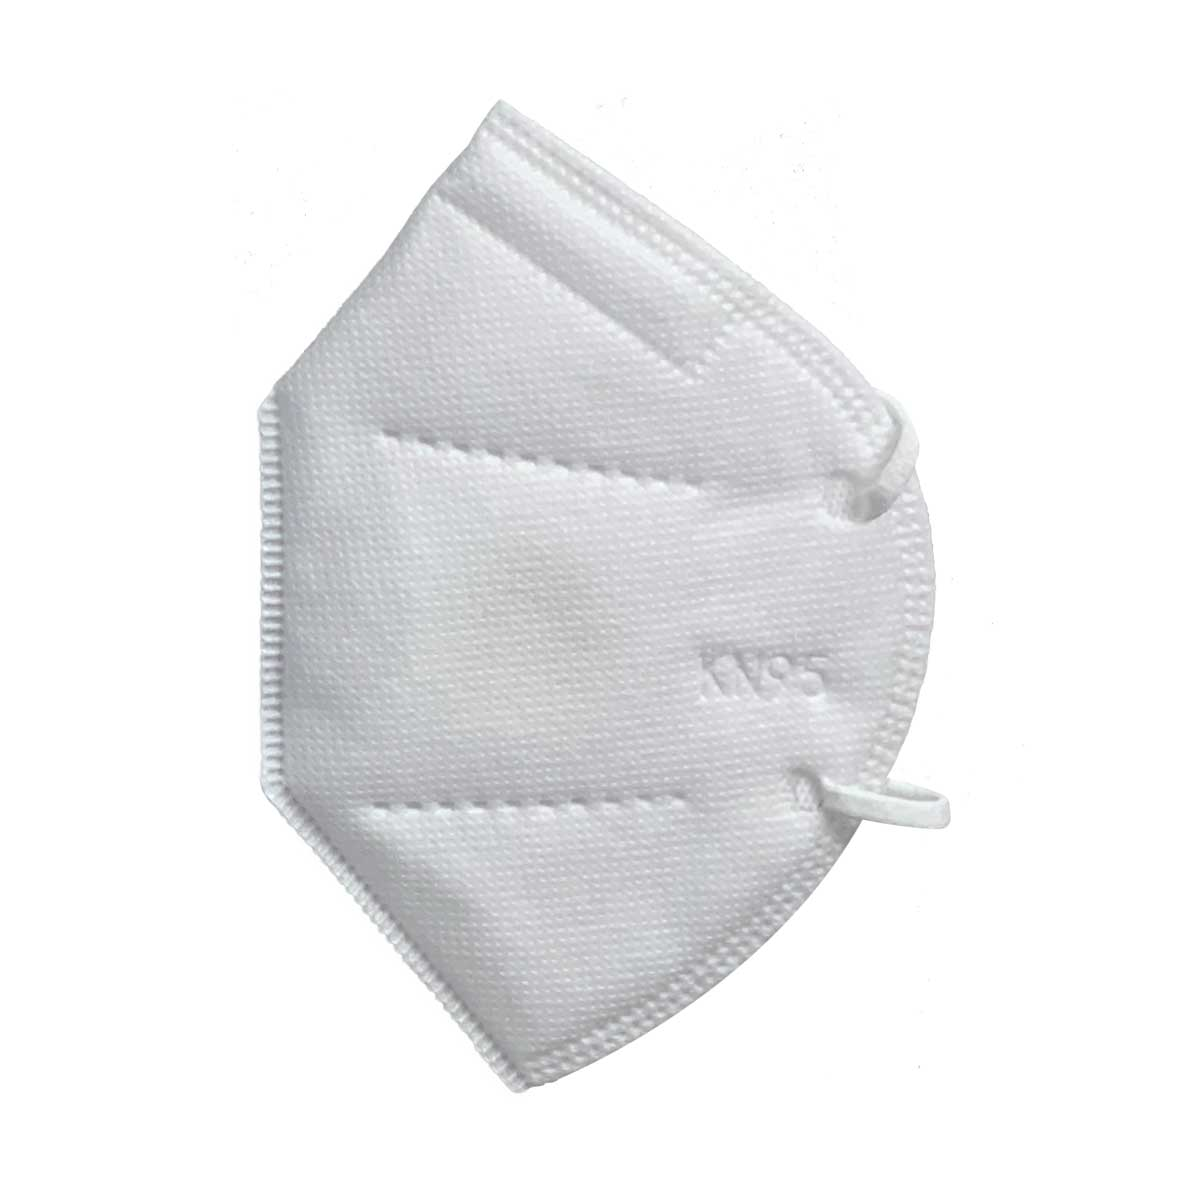 White KN95 Protective Face Masks (20 Pack) - Think360 Inc